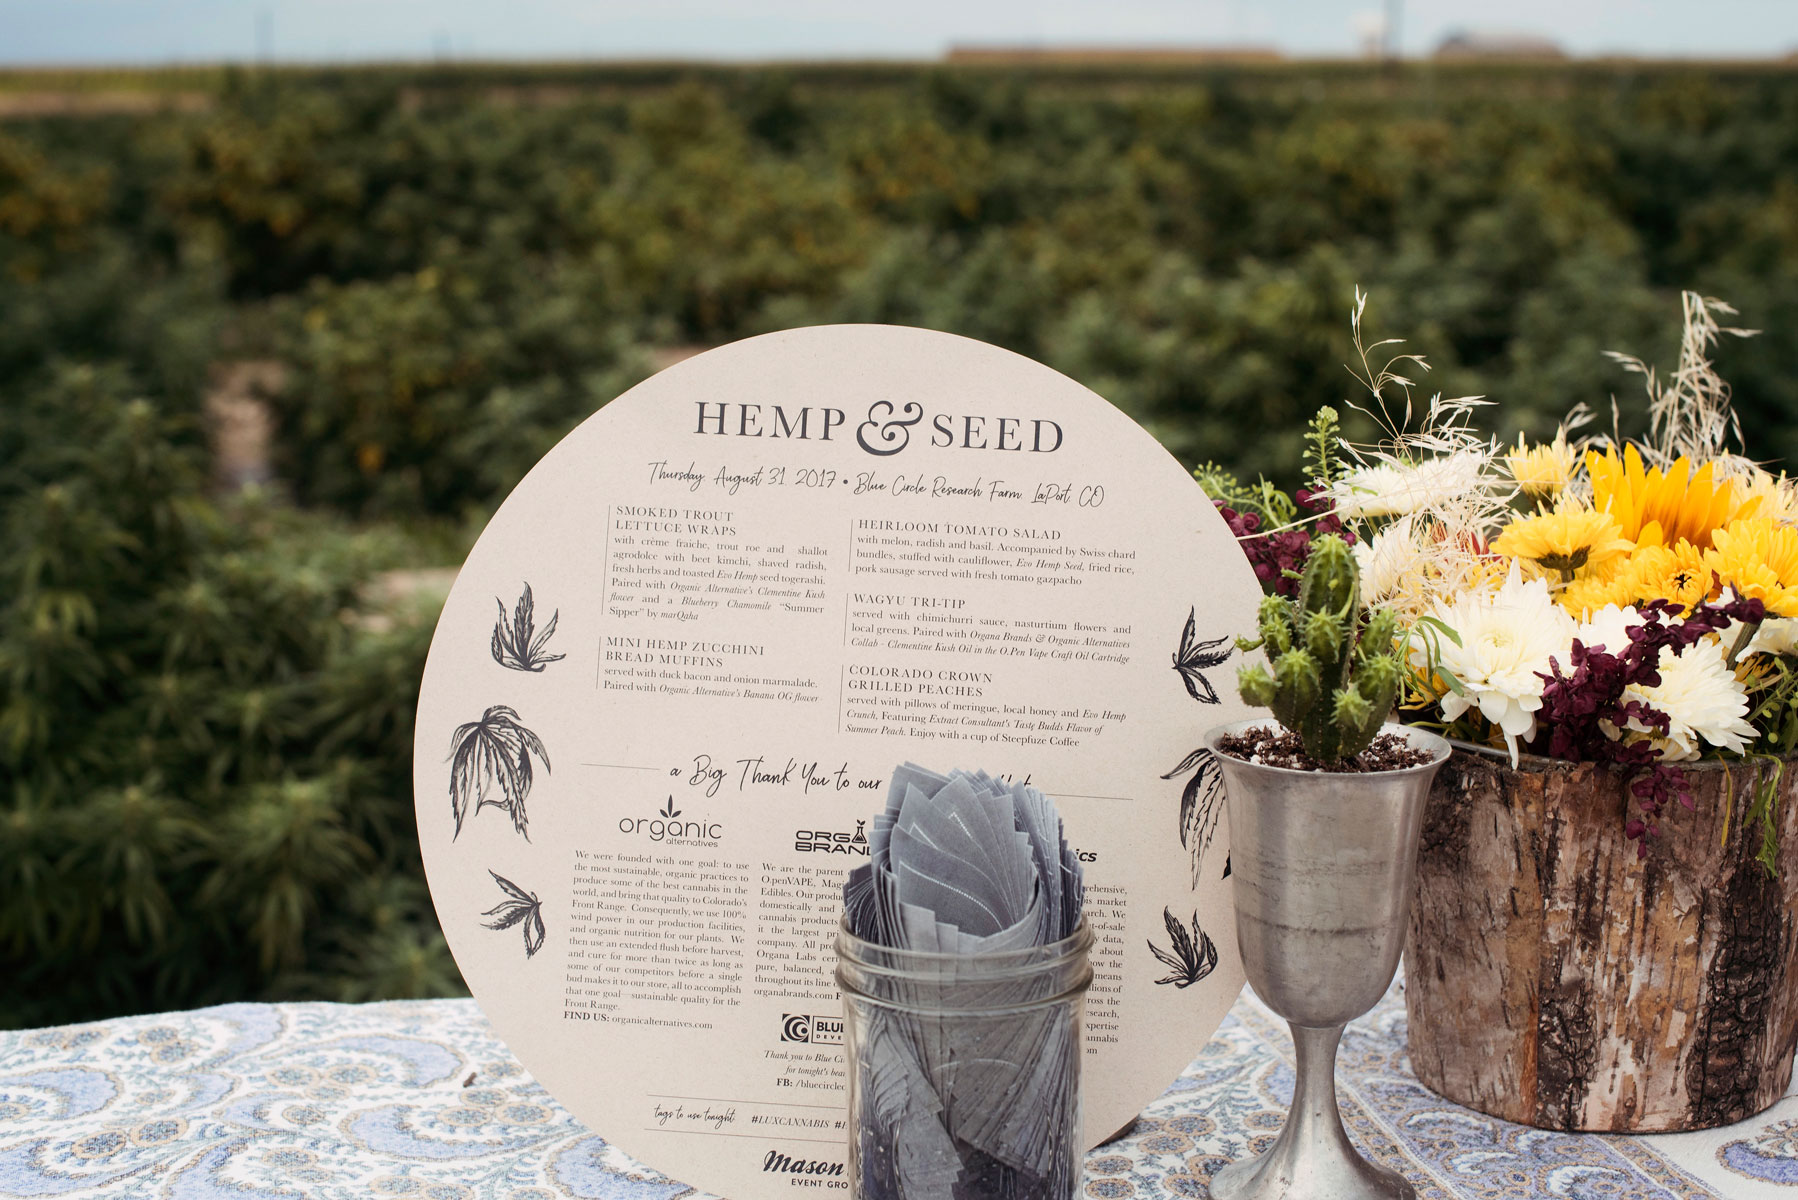 hemp&seed-mason-jar-cannabis-events-menu-design-hempsley-dog-daze